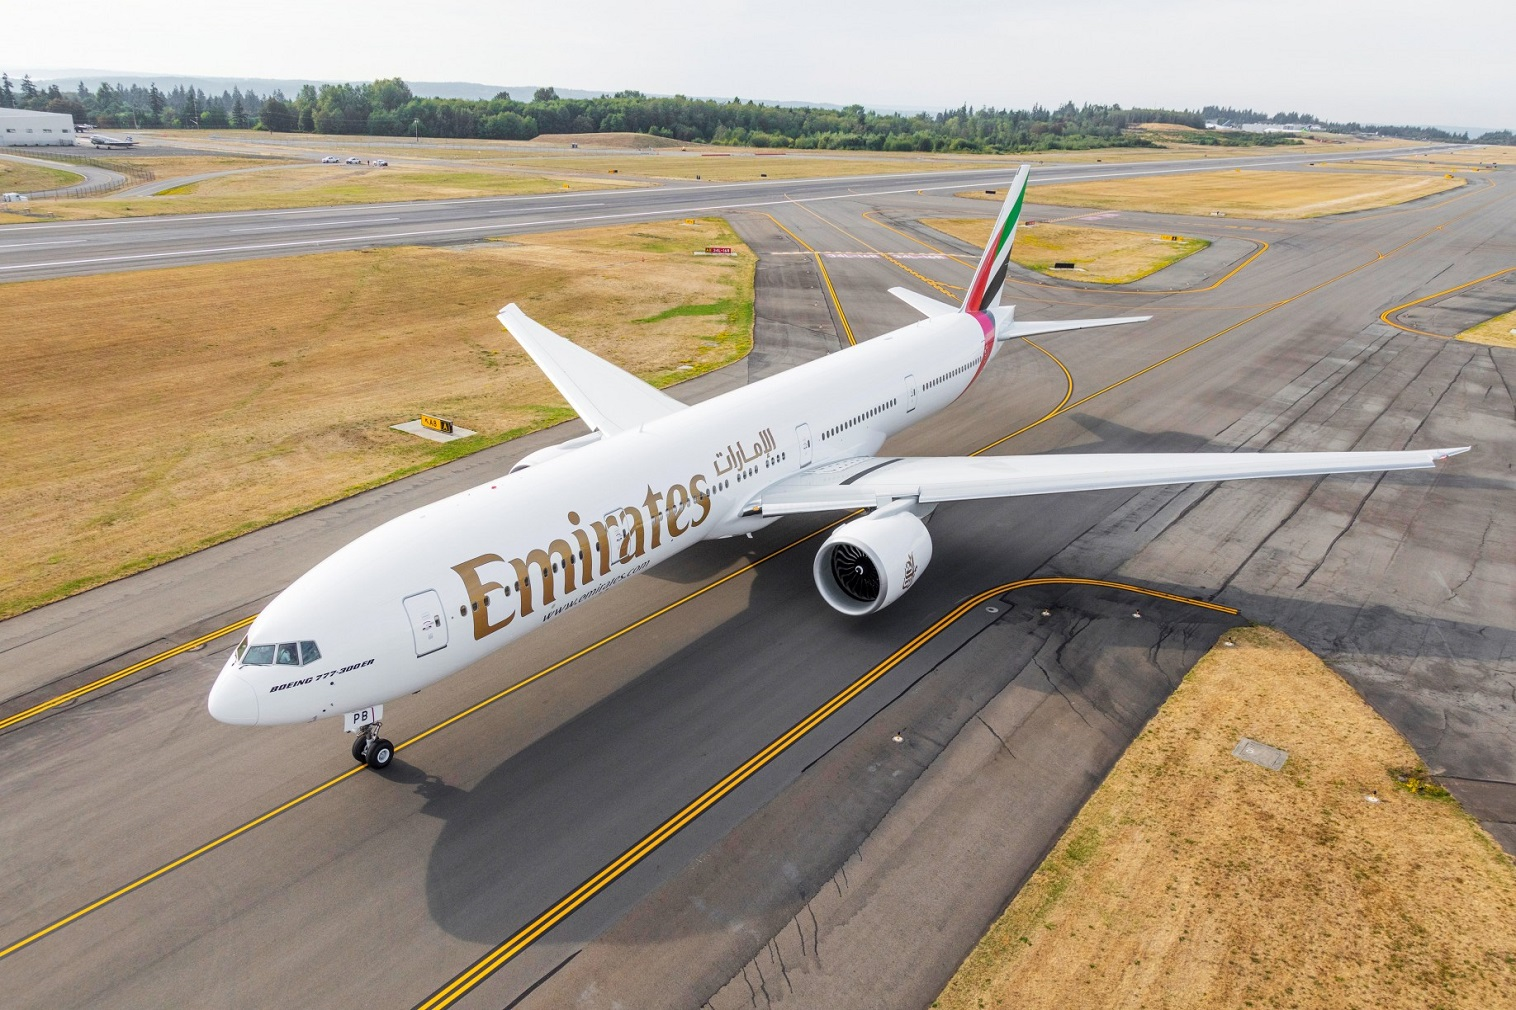 Emirates Airline is offering UAE travellers a chance to travel to popular destinations including London, Vienna and Cape Town.